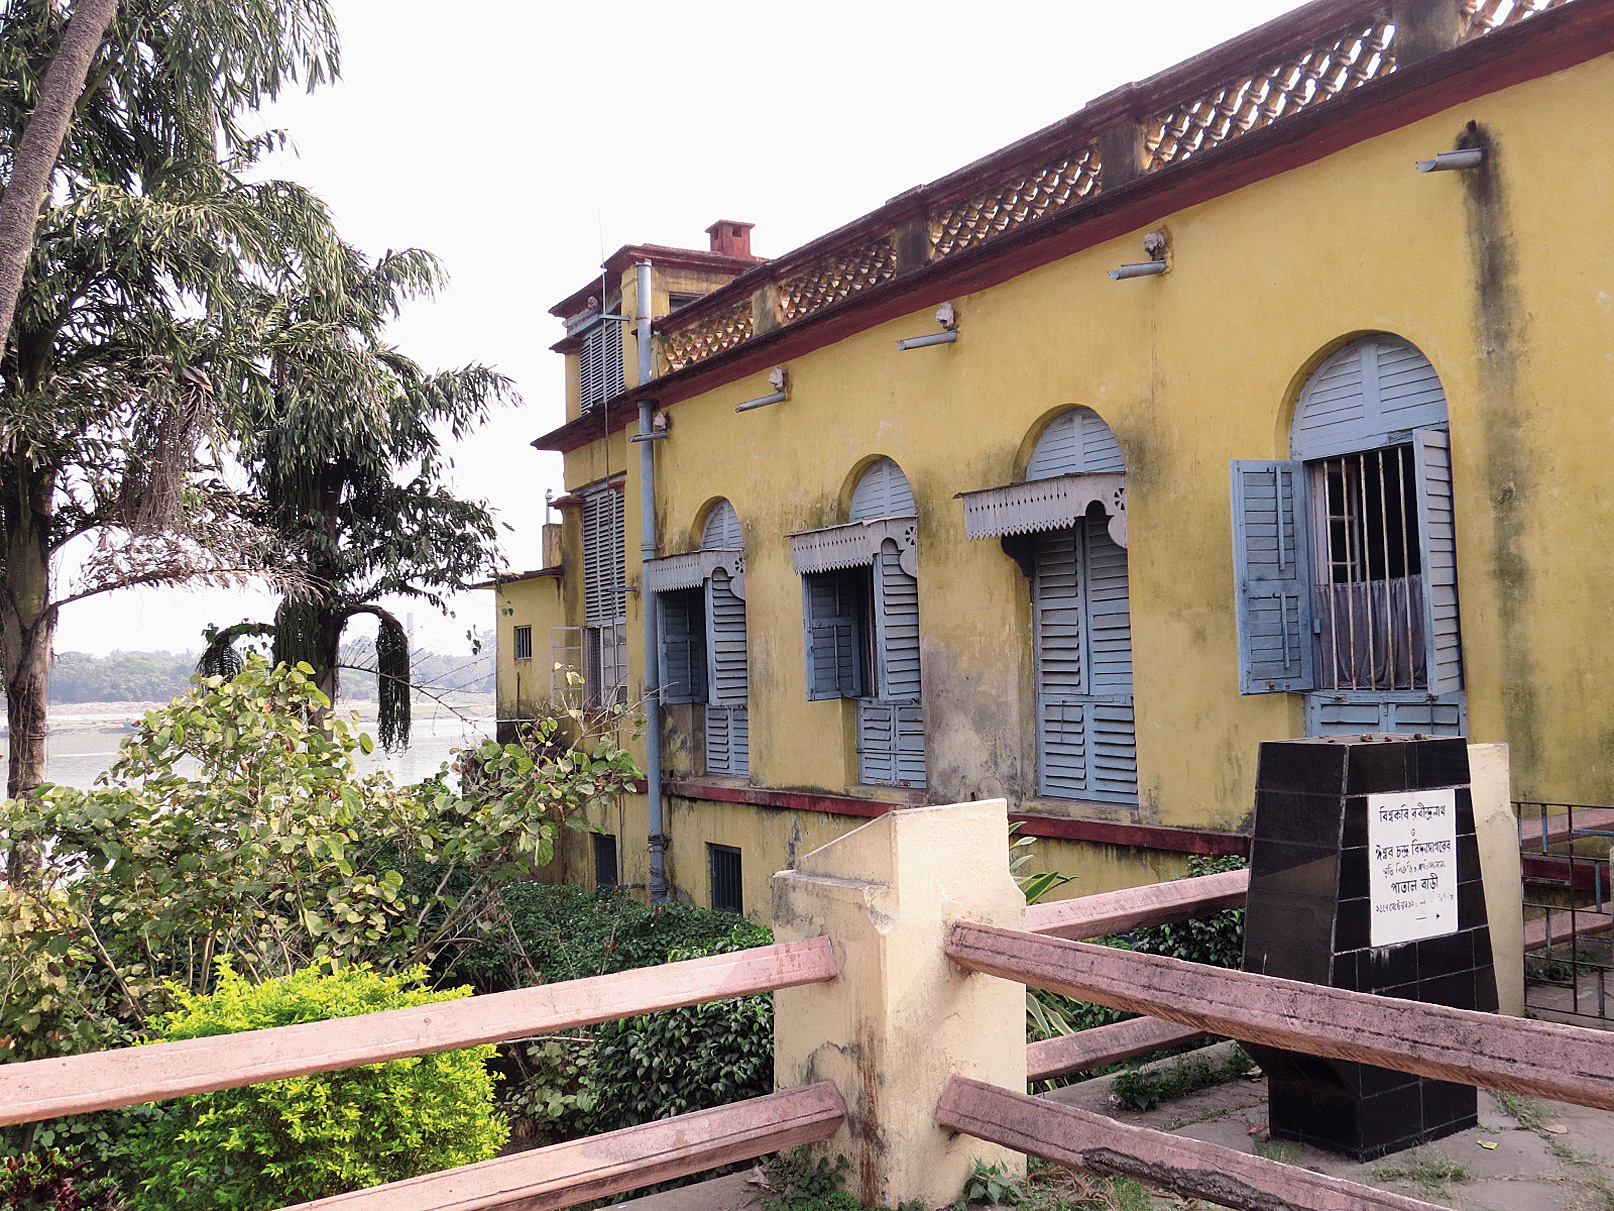 Patal Bari, so called because the lowest floor of the building gets submerged during high tide. Vidyasagar and Rabindranath Tagore had stayed in this building